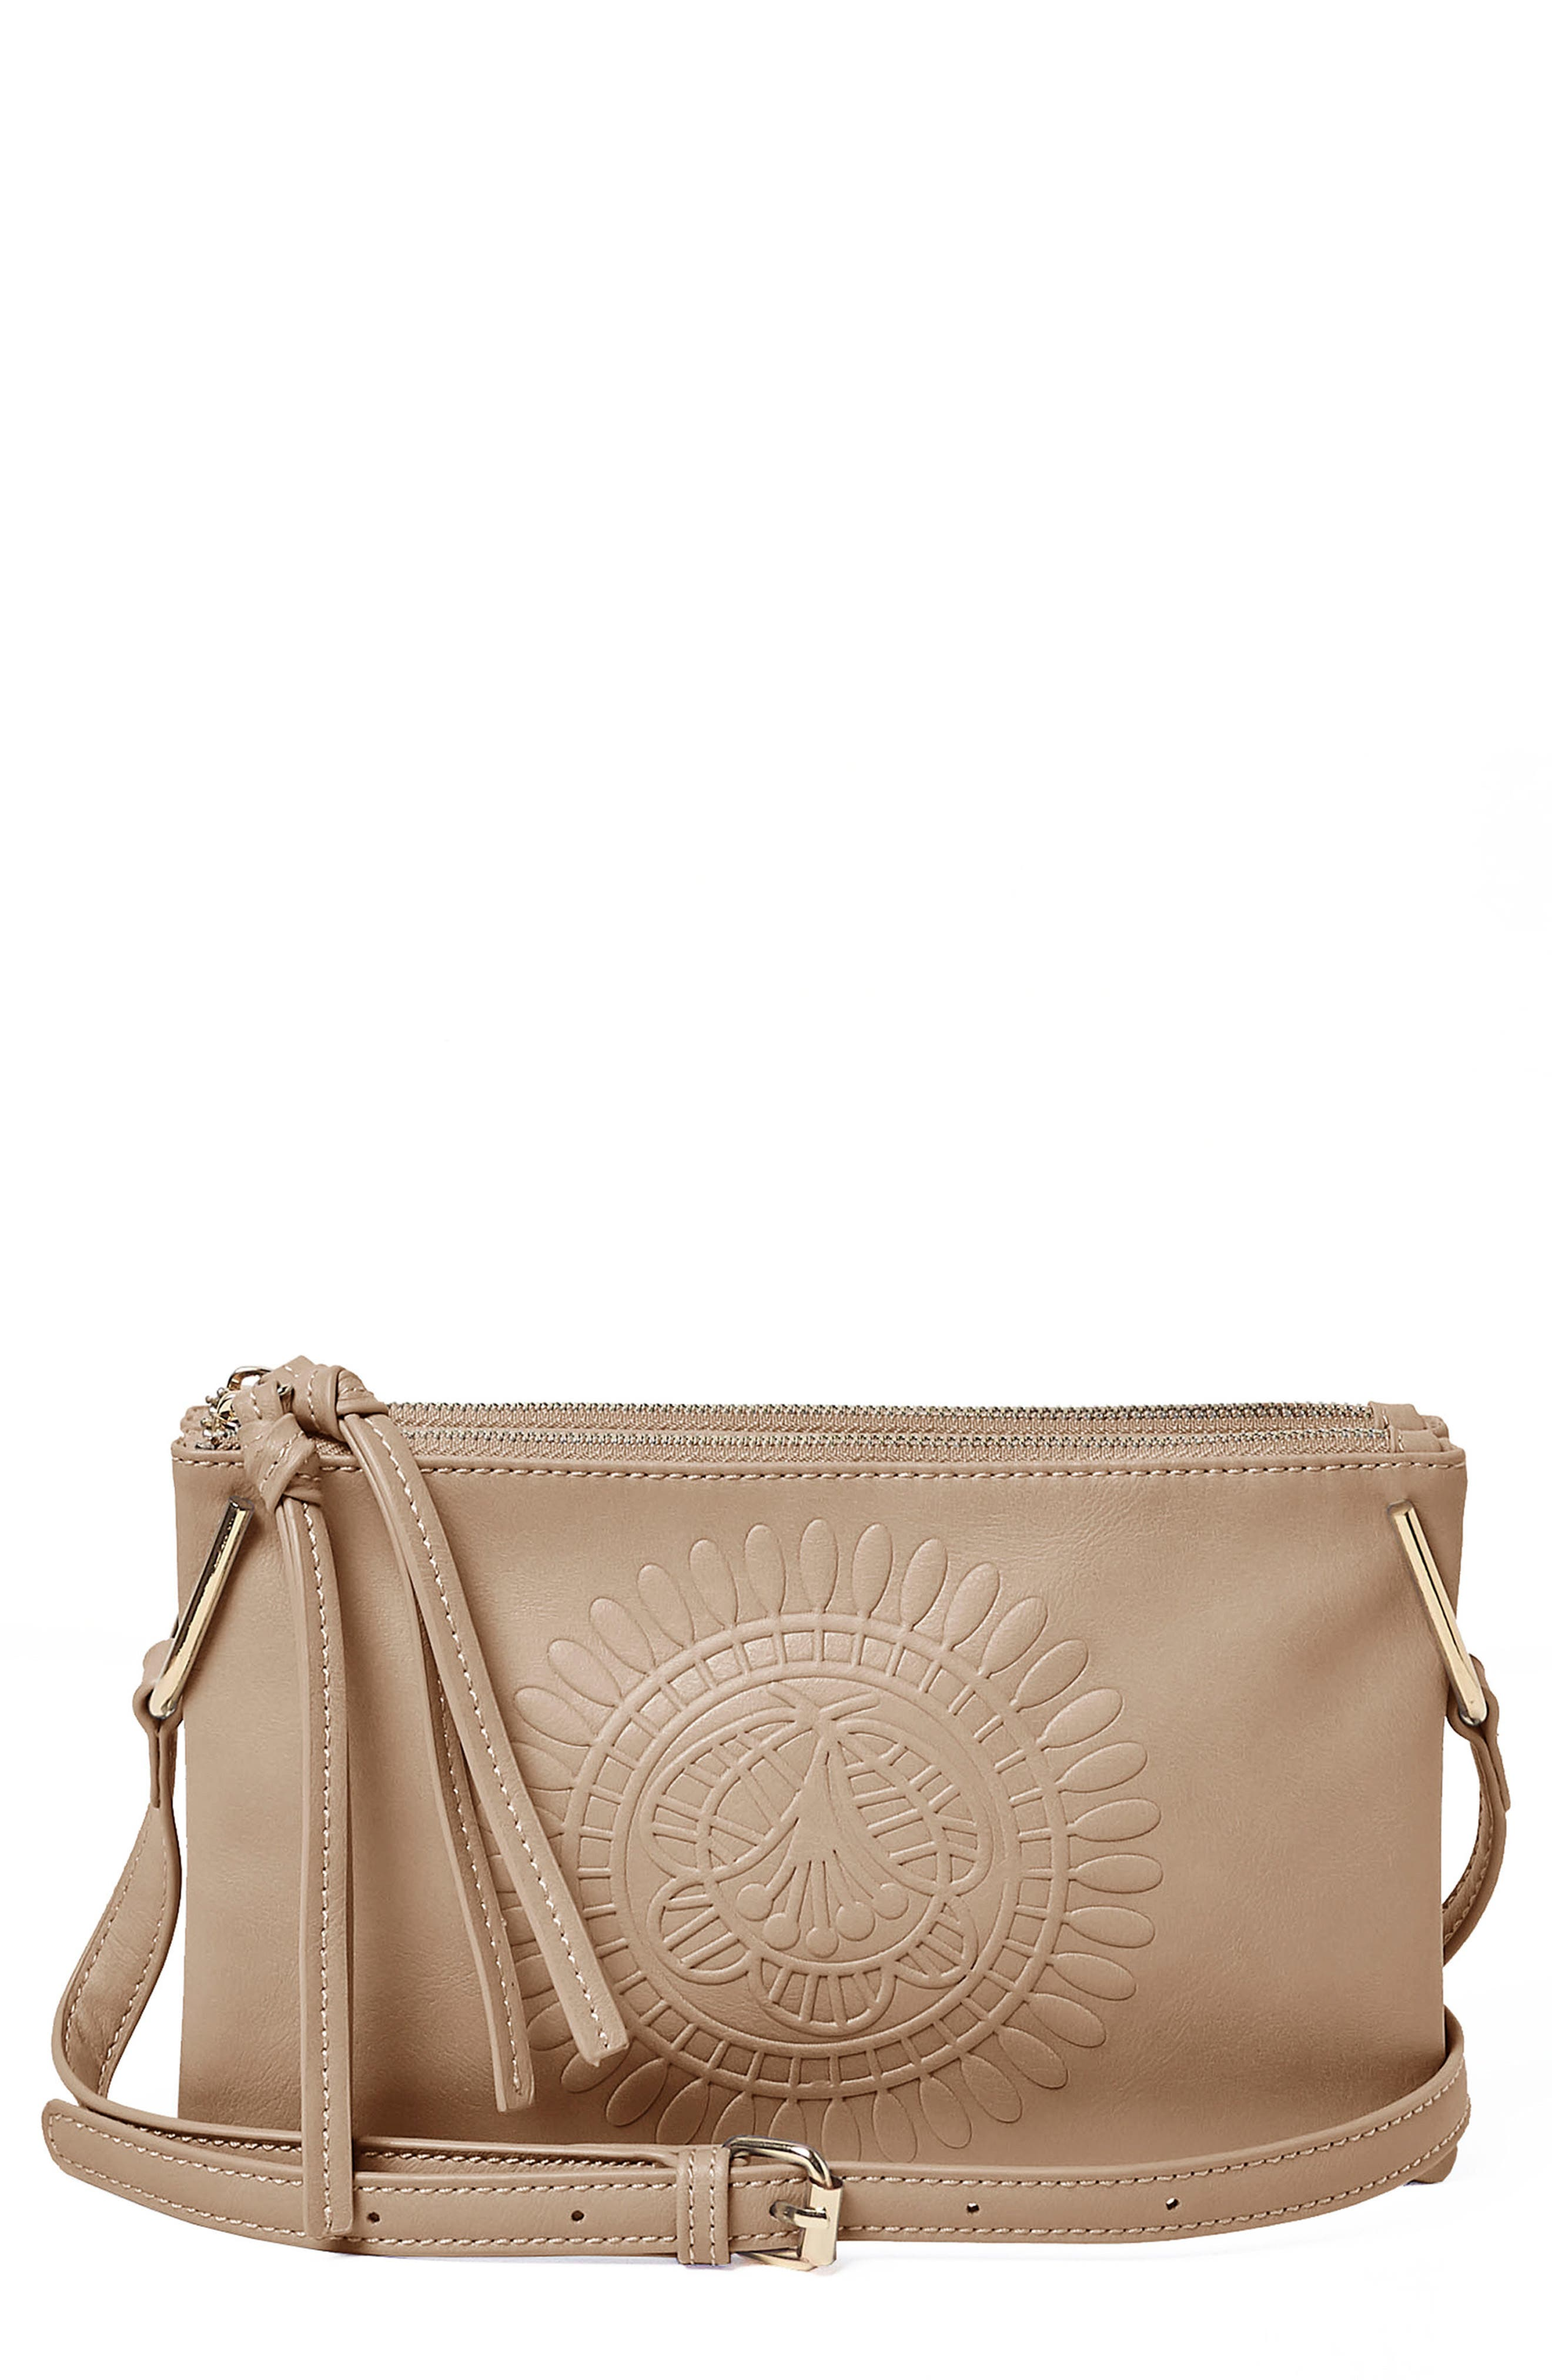 Flower Vegan Leather Crossbody Bag,                         Main,                         color, Taupe